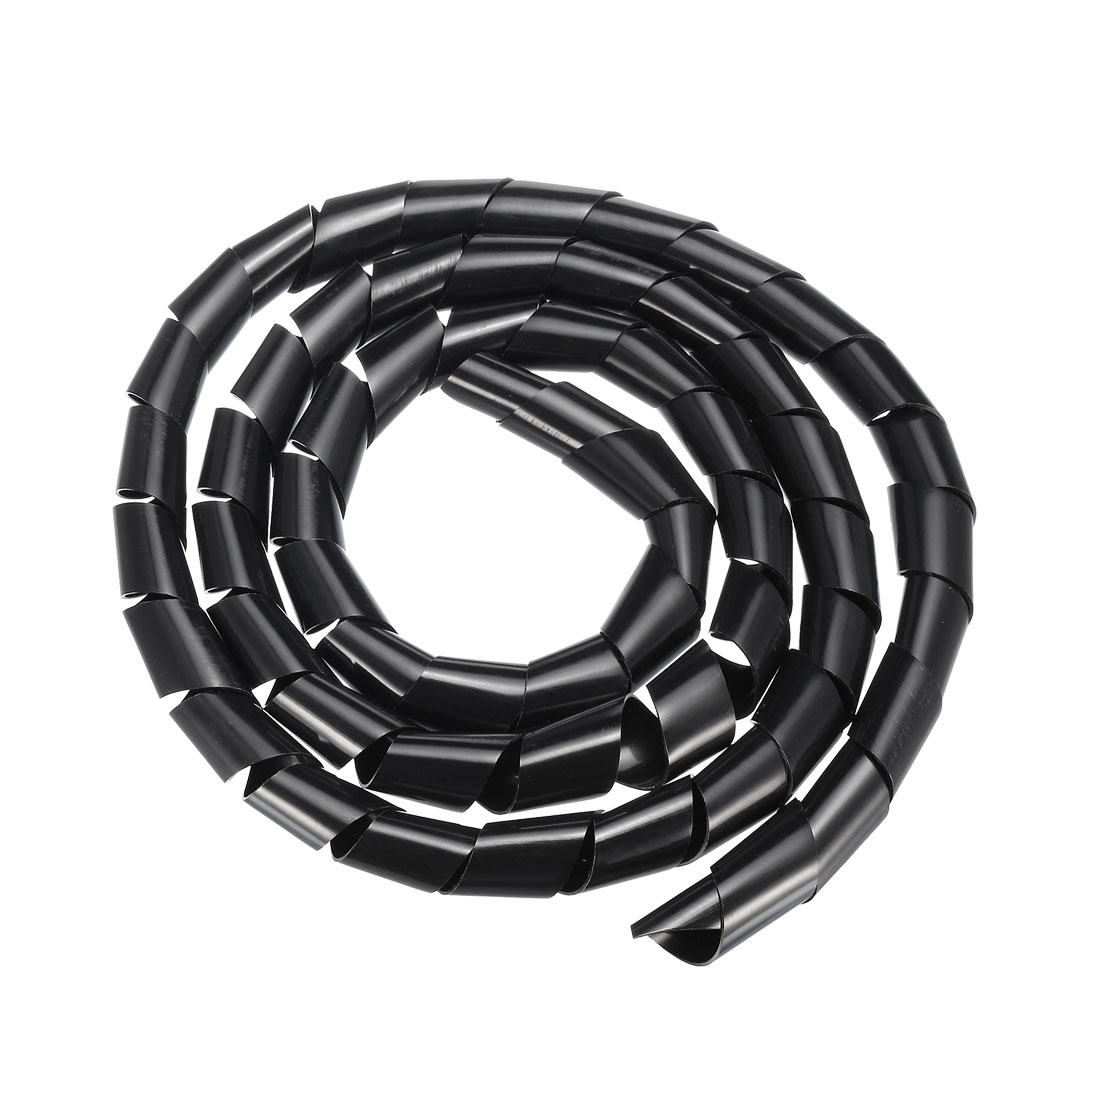 26mm Flexible Spiral Tube Cable Wire Wrap Computer Manage Cord 1.5M Length Black